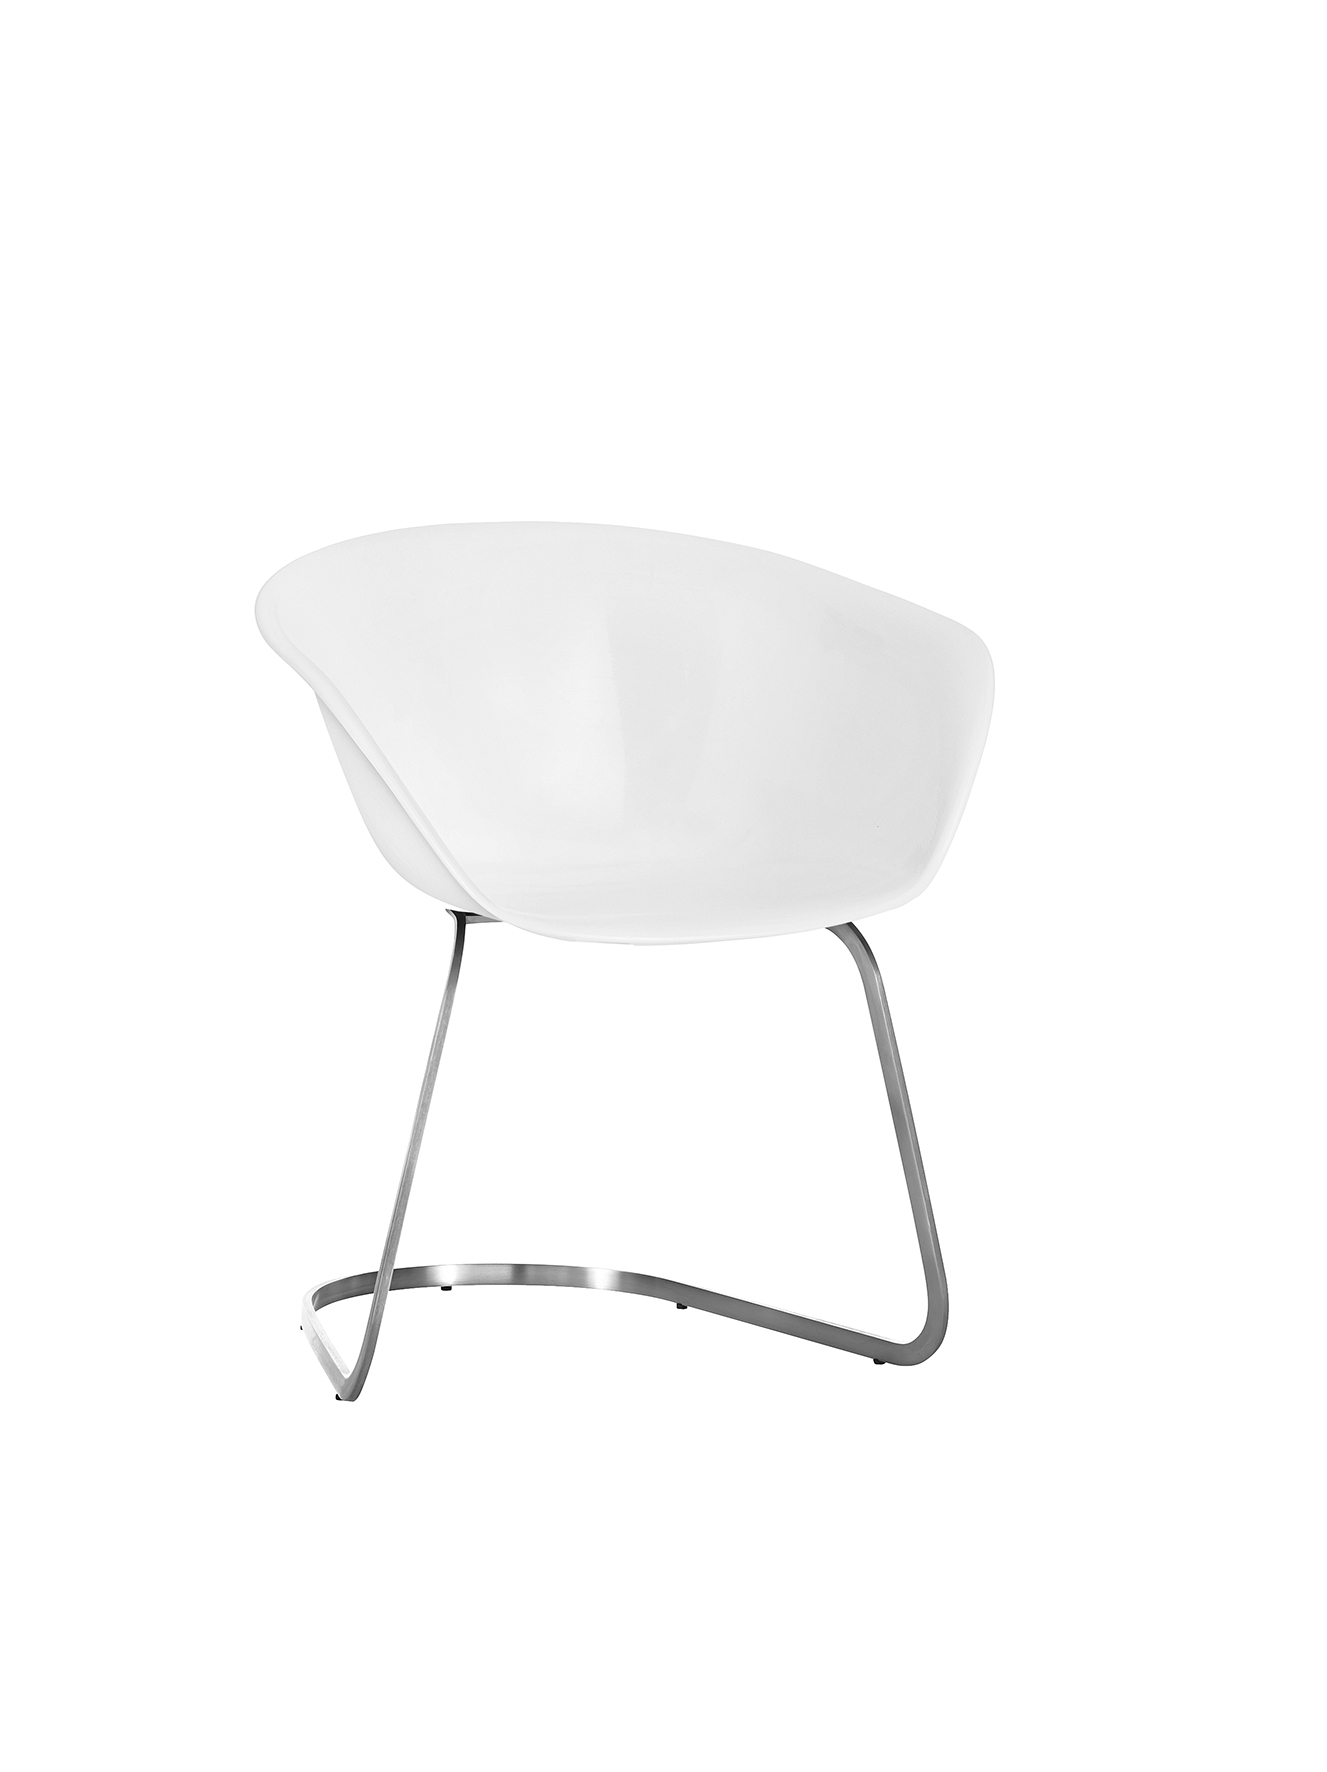 Duna02 4204 chair by Arper